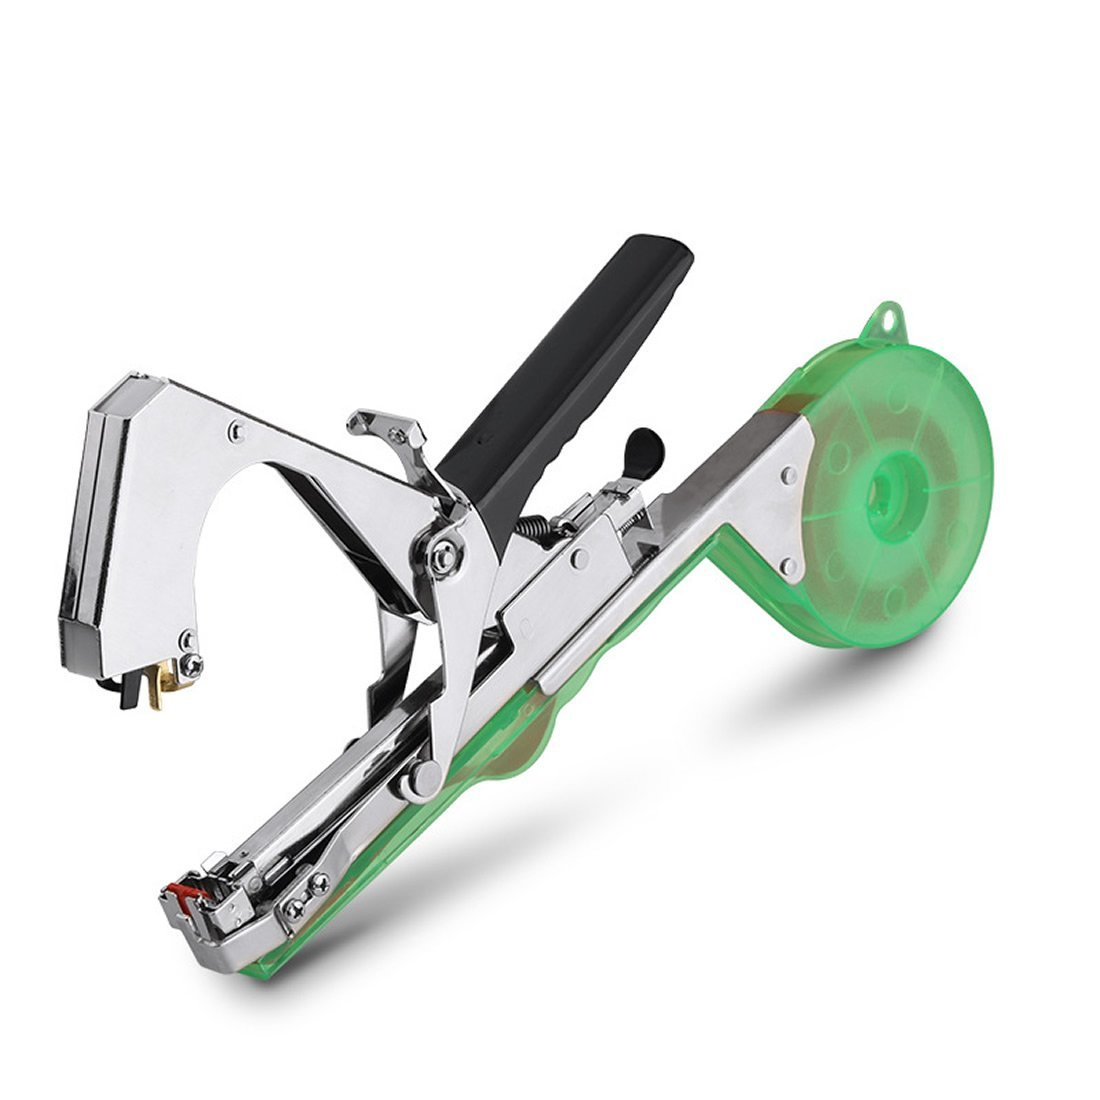 COOCLE Tying Machine for Plant and Garden Plants Tapetool Tapener for Vegetable, Grape, Tomato, Cucumber, Pepper and Flower Tying Tape Tool